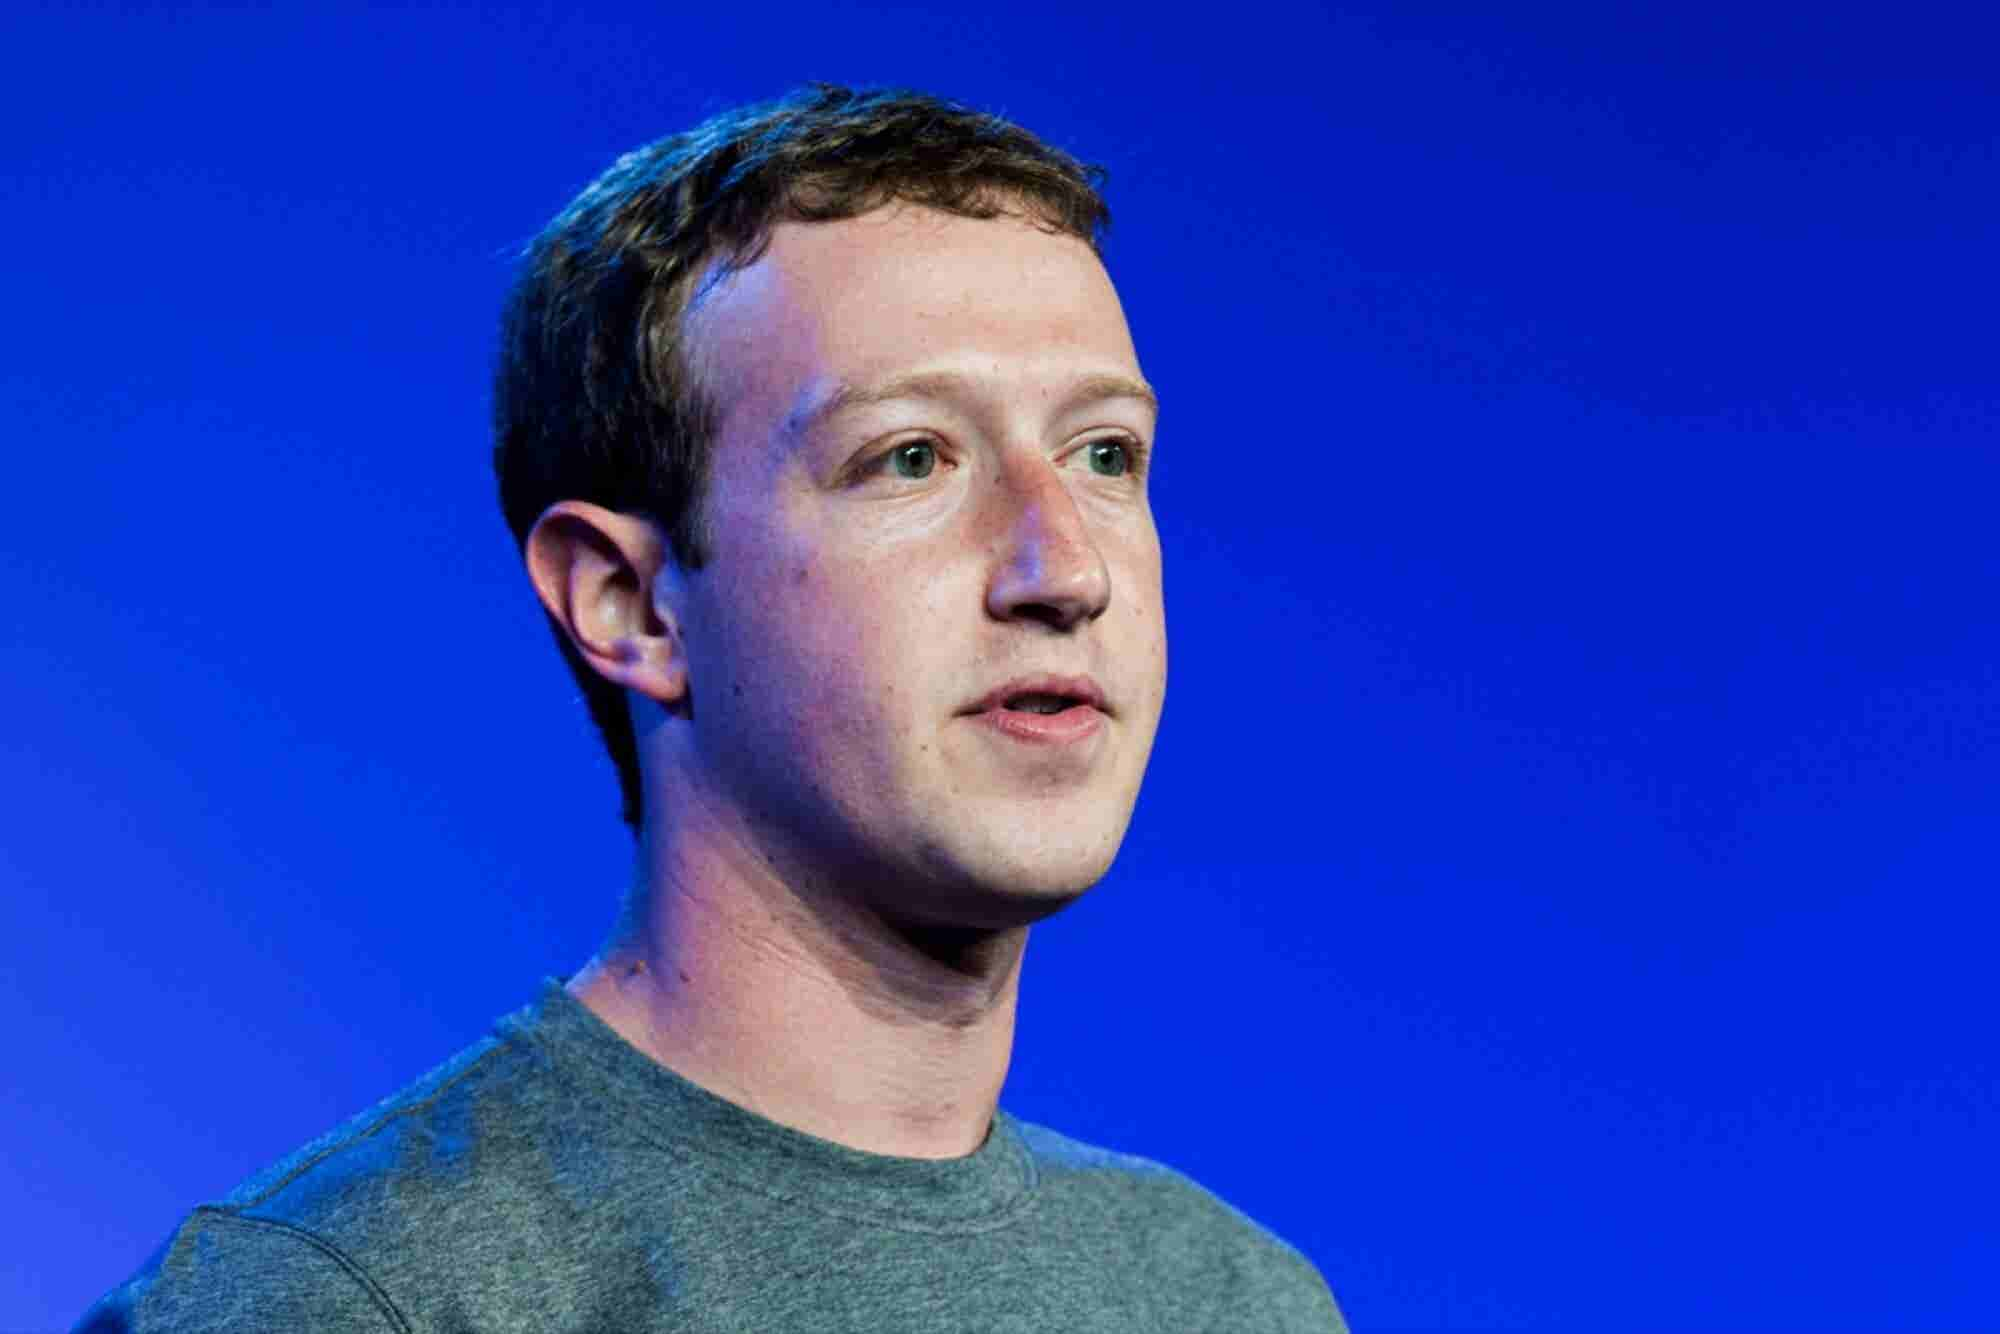 Mark Zuckerberg's Twitter and Pinterest Were Hacked, His Simple Password Revealed